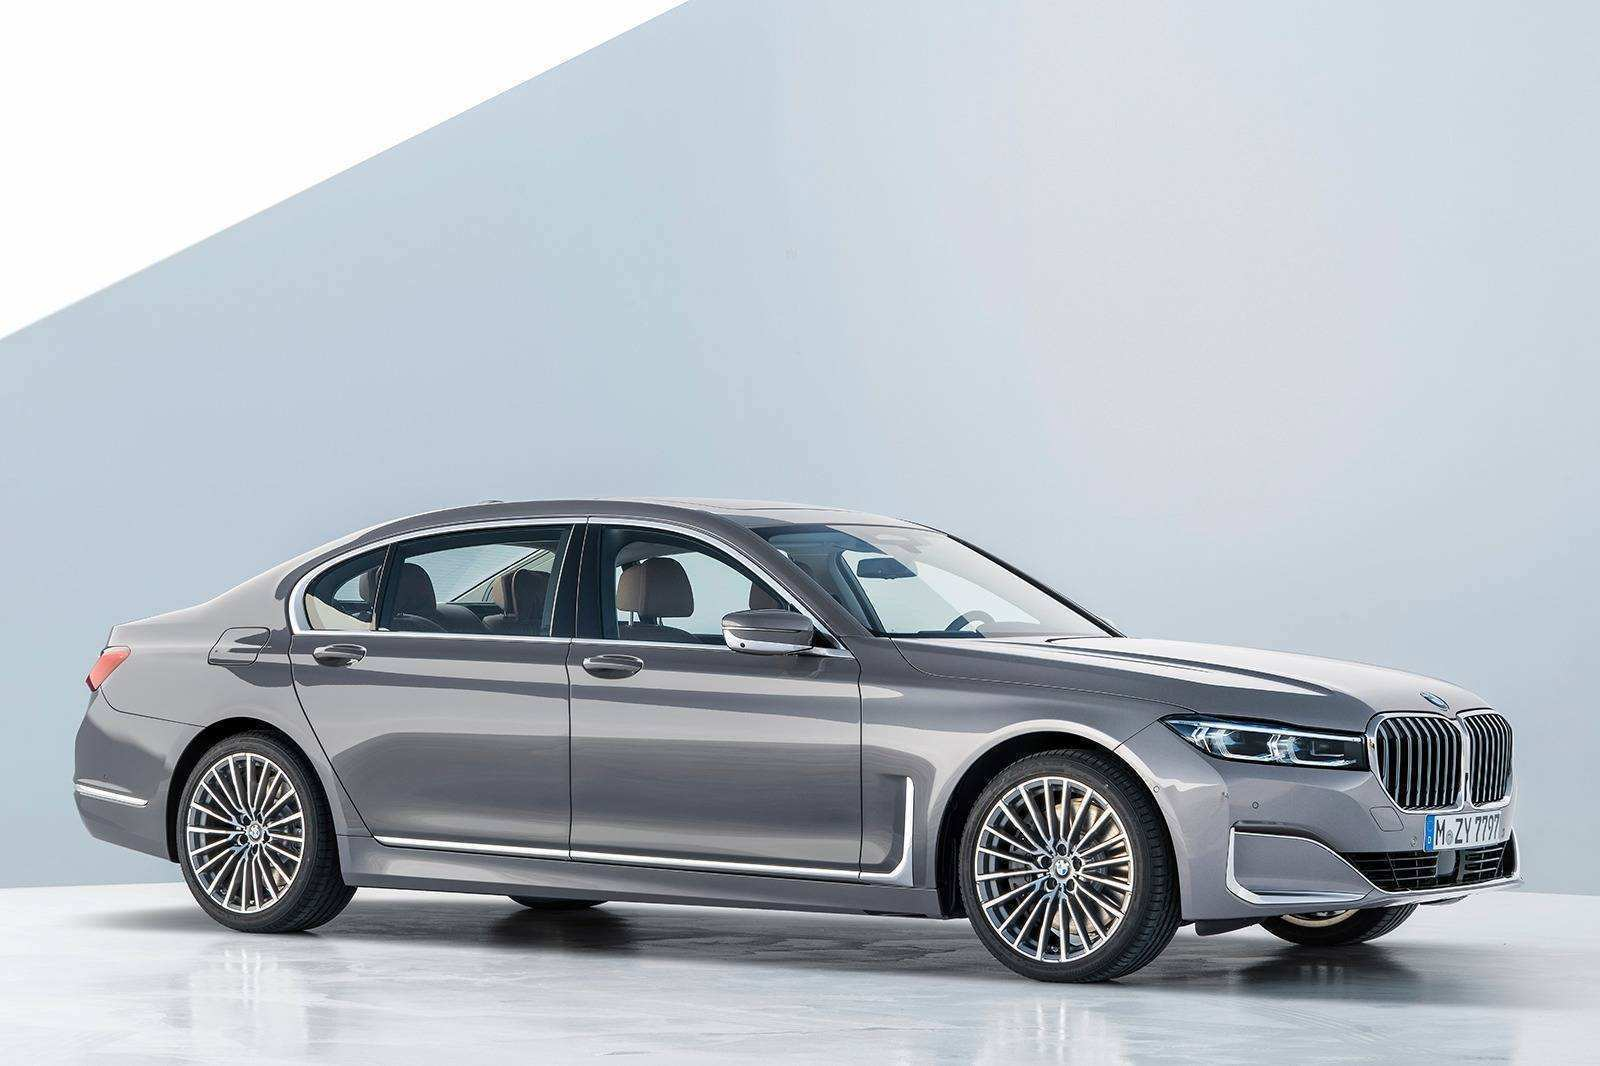 97 A 2020 BMW 7 Series Order Guide Concept